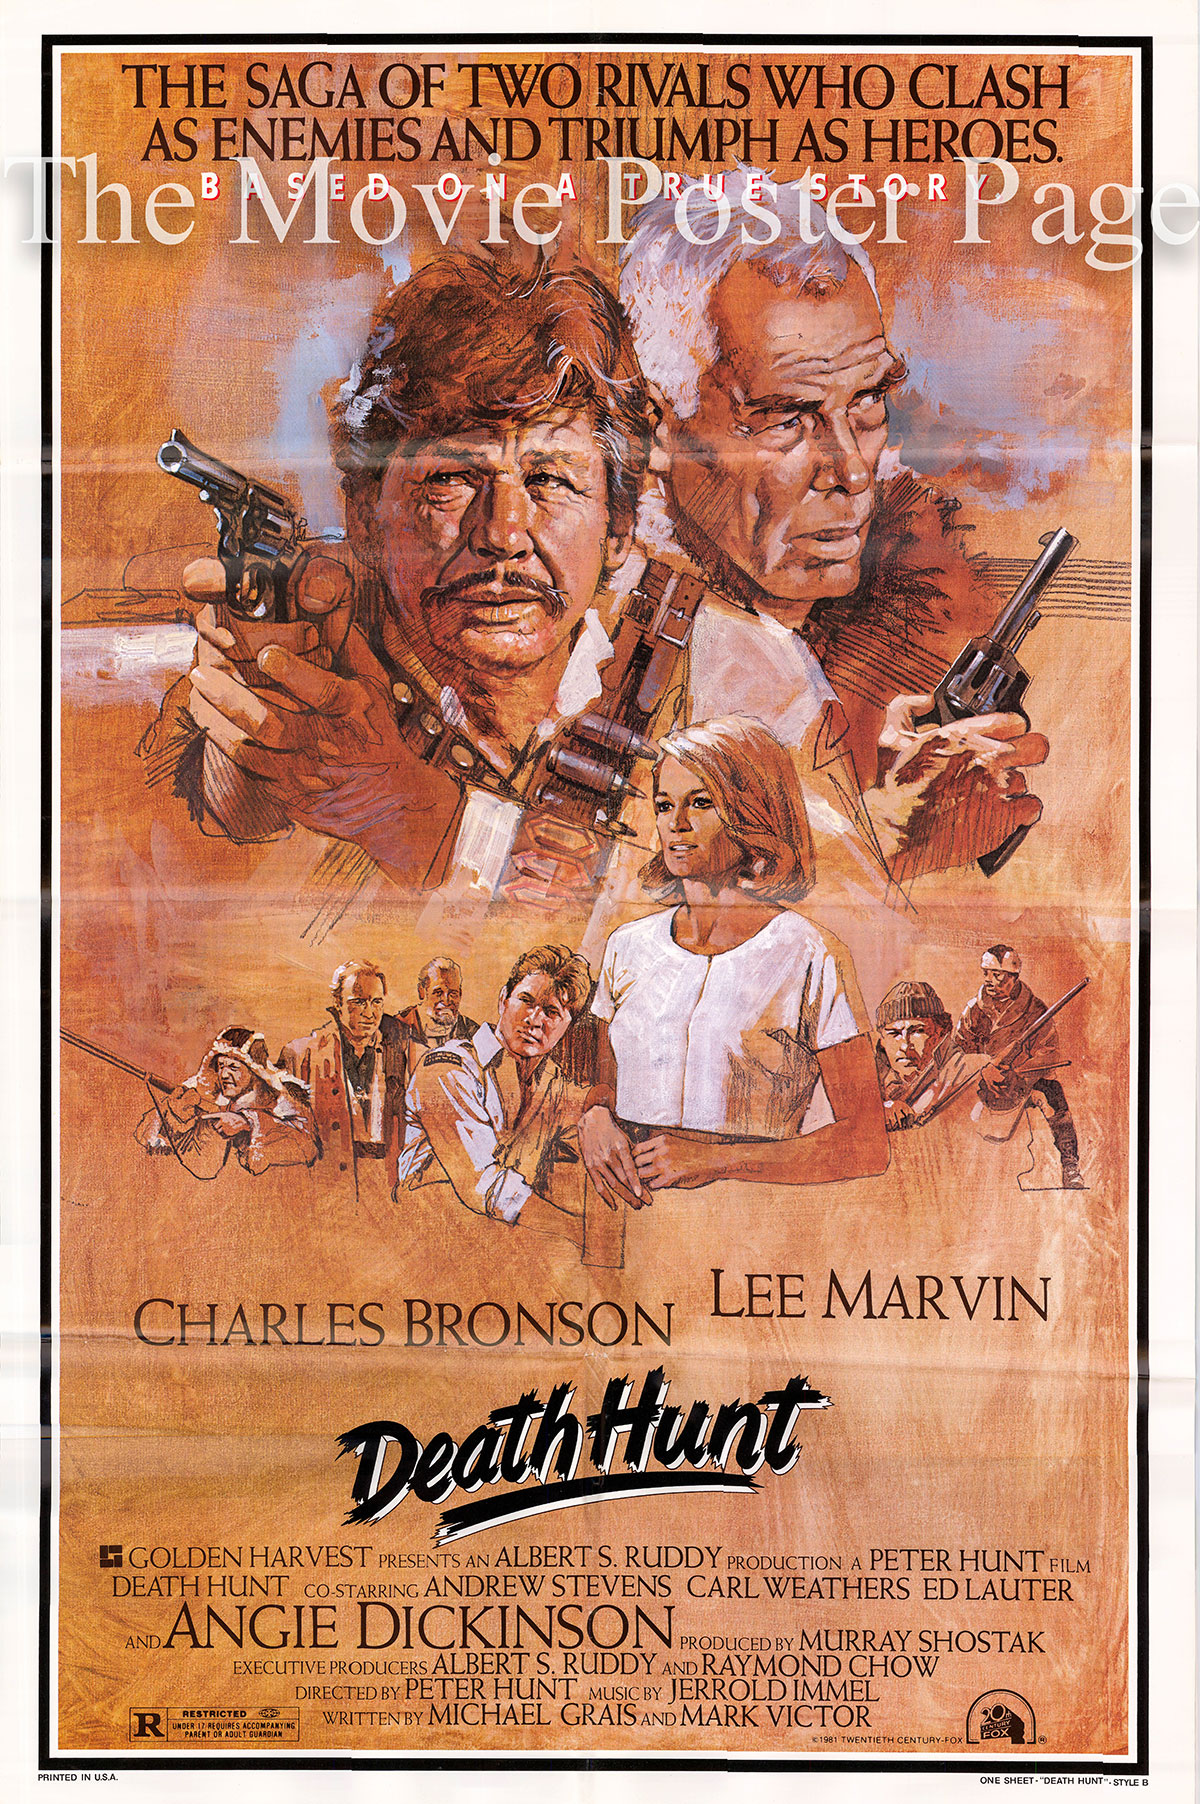 Pictured is a US one-sheet promotional poster for the 1981 Peter R. Hunt film Death Hunt starring Charles Bronson and Lee Marvin.